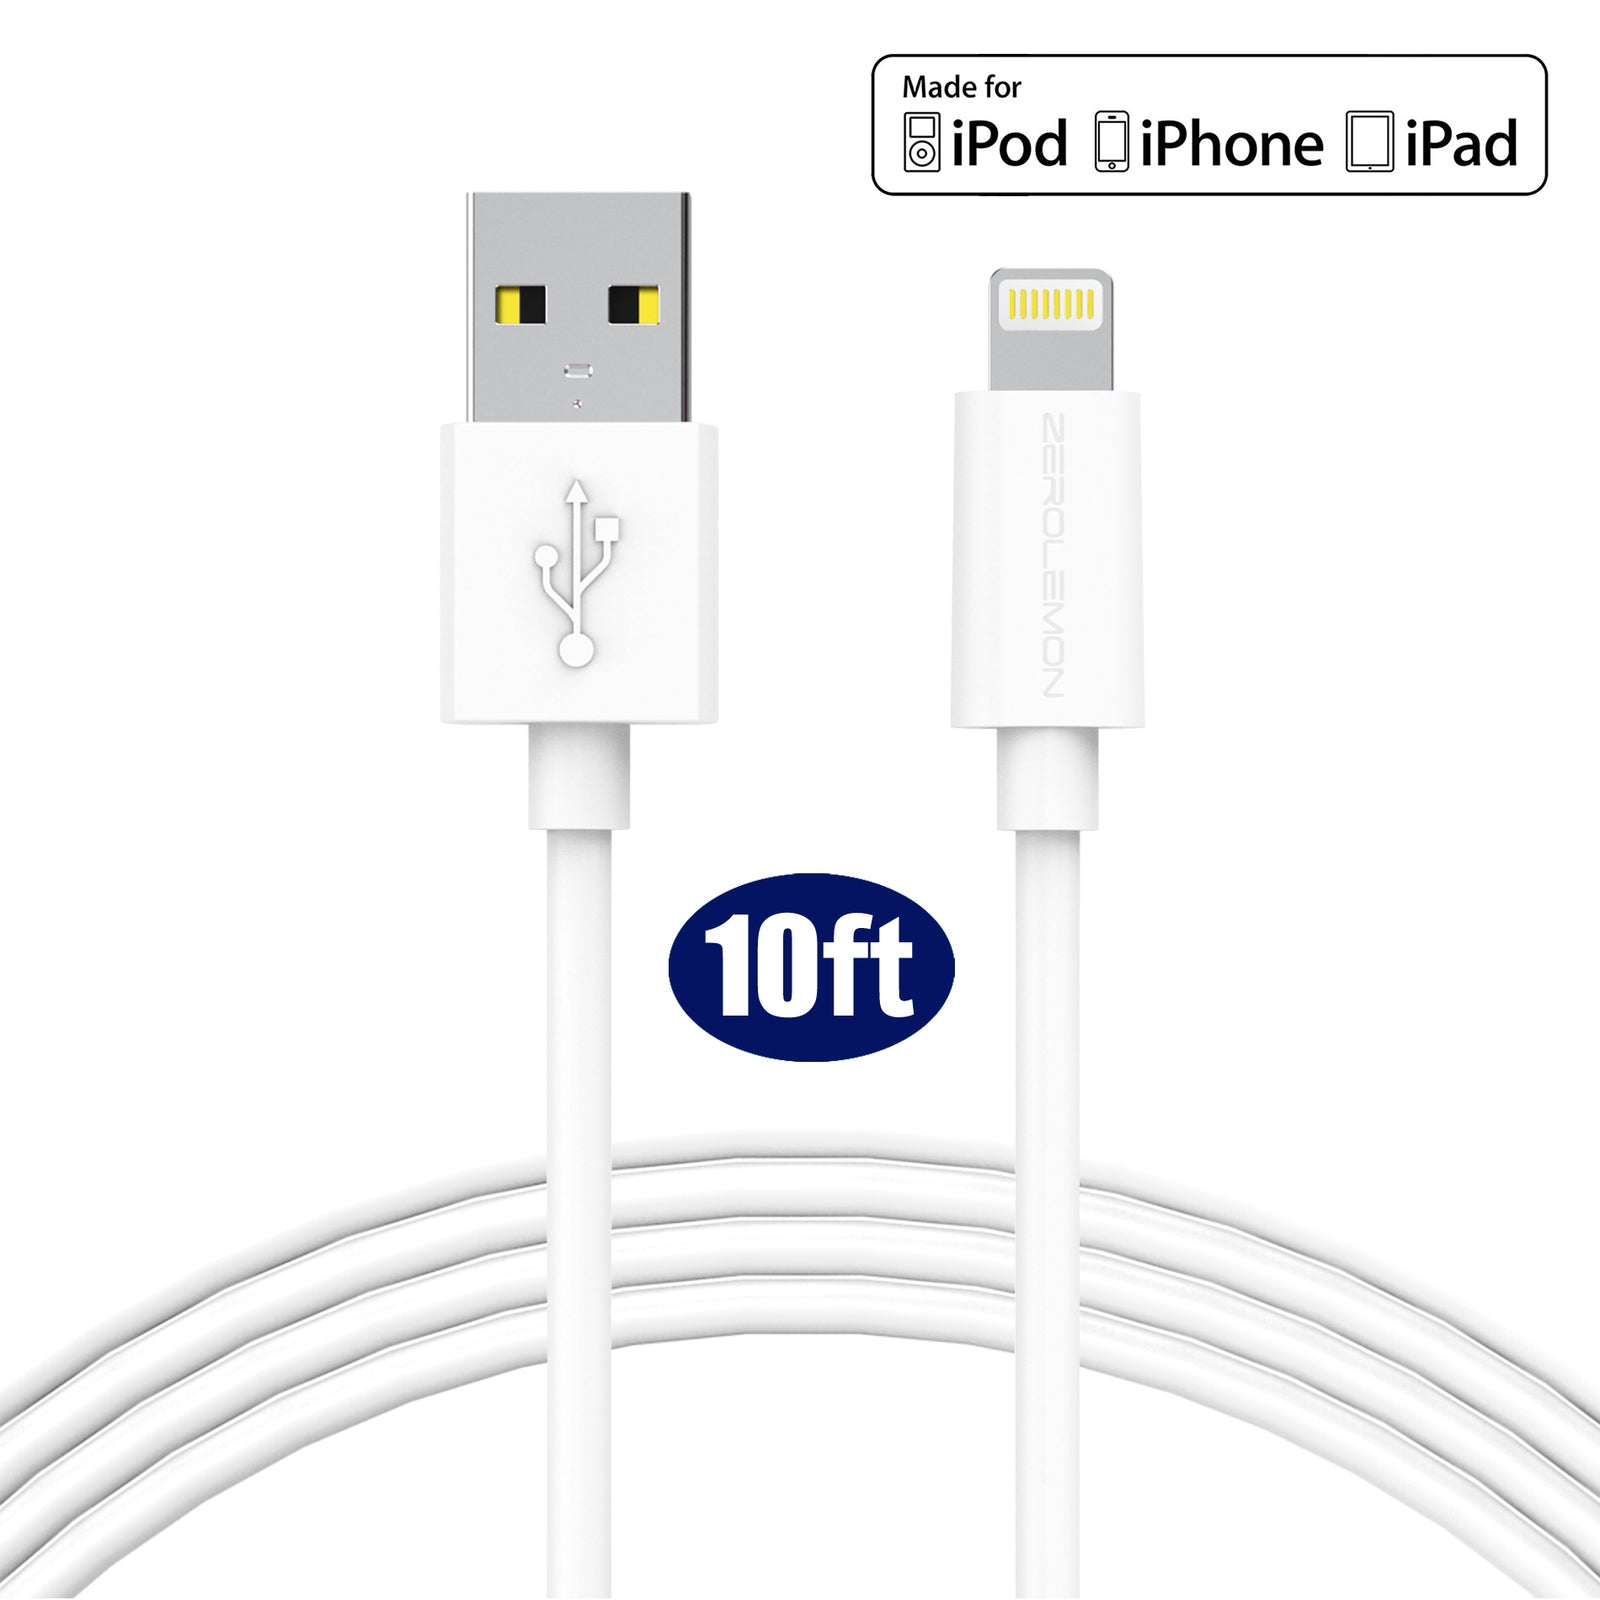 Iphone Usb Cable Replacement: iPhone Charging Cable 10ft/3m [10-Pack] - PVC Whiterh:zerolemon.com,Design